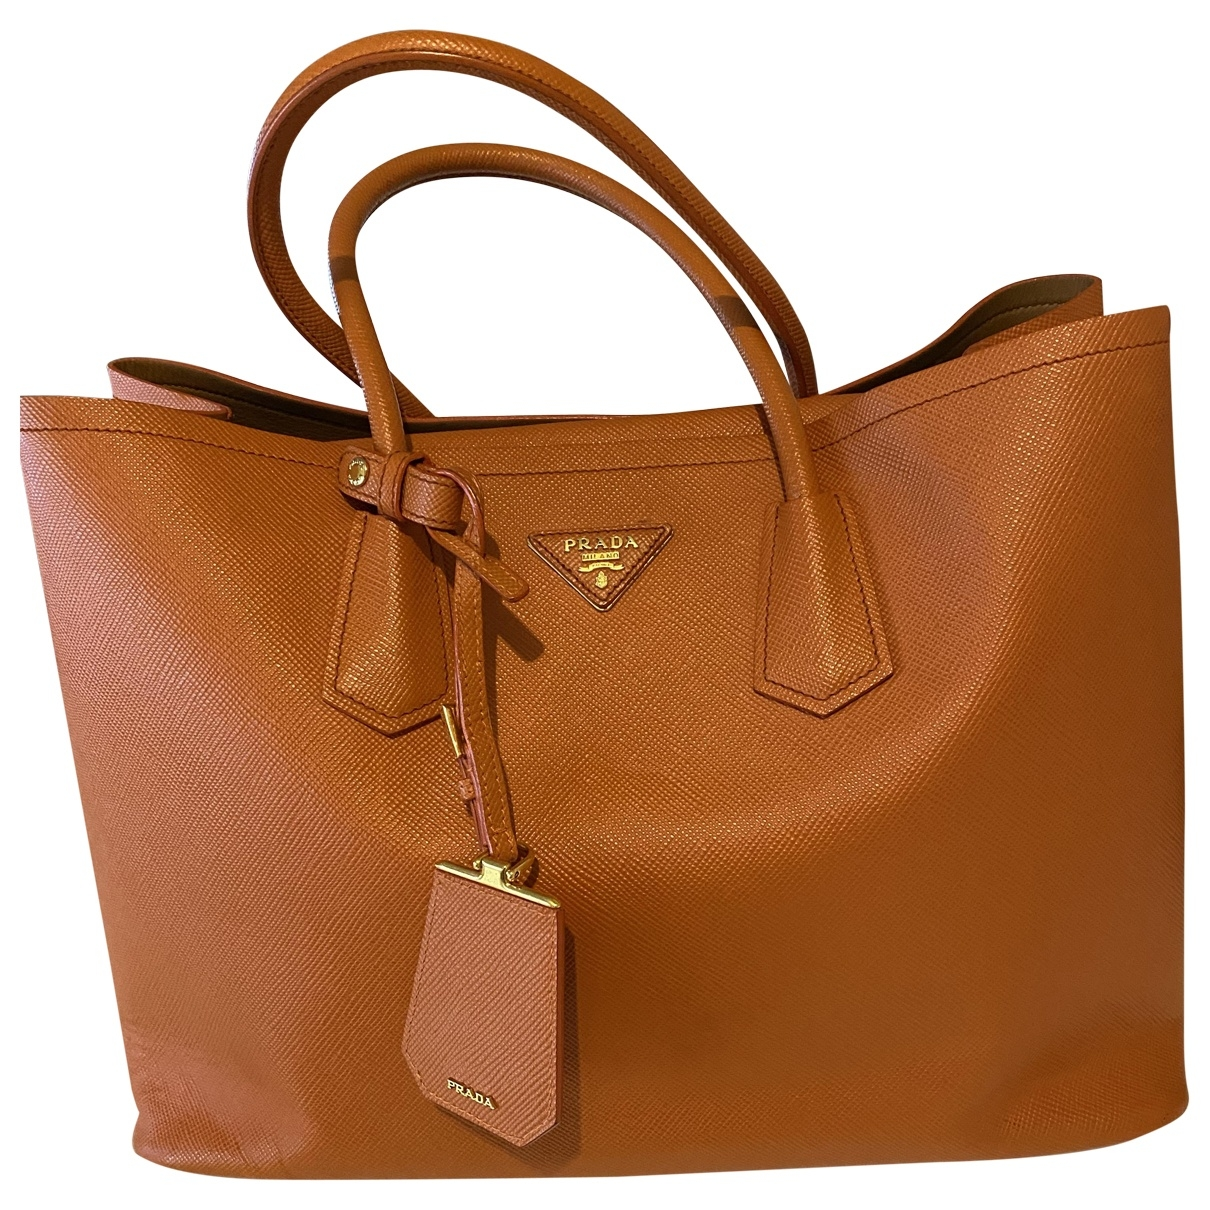 Prada \N Orange Leather handbag for Women \N